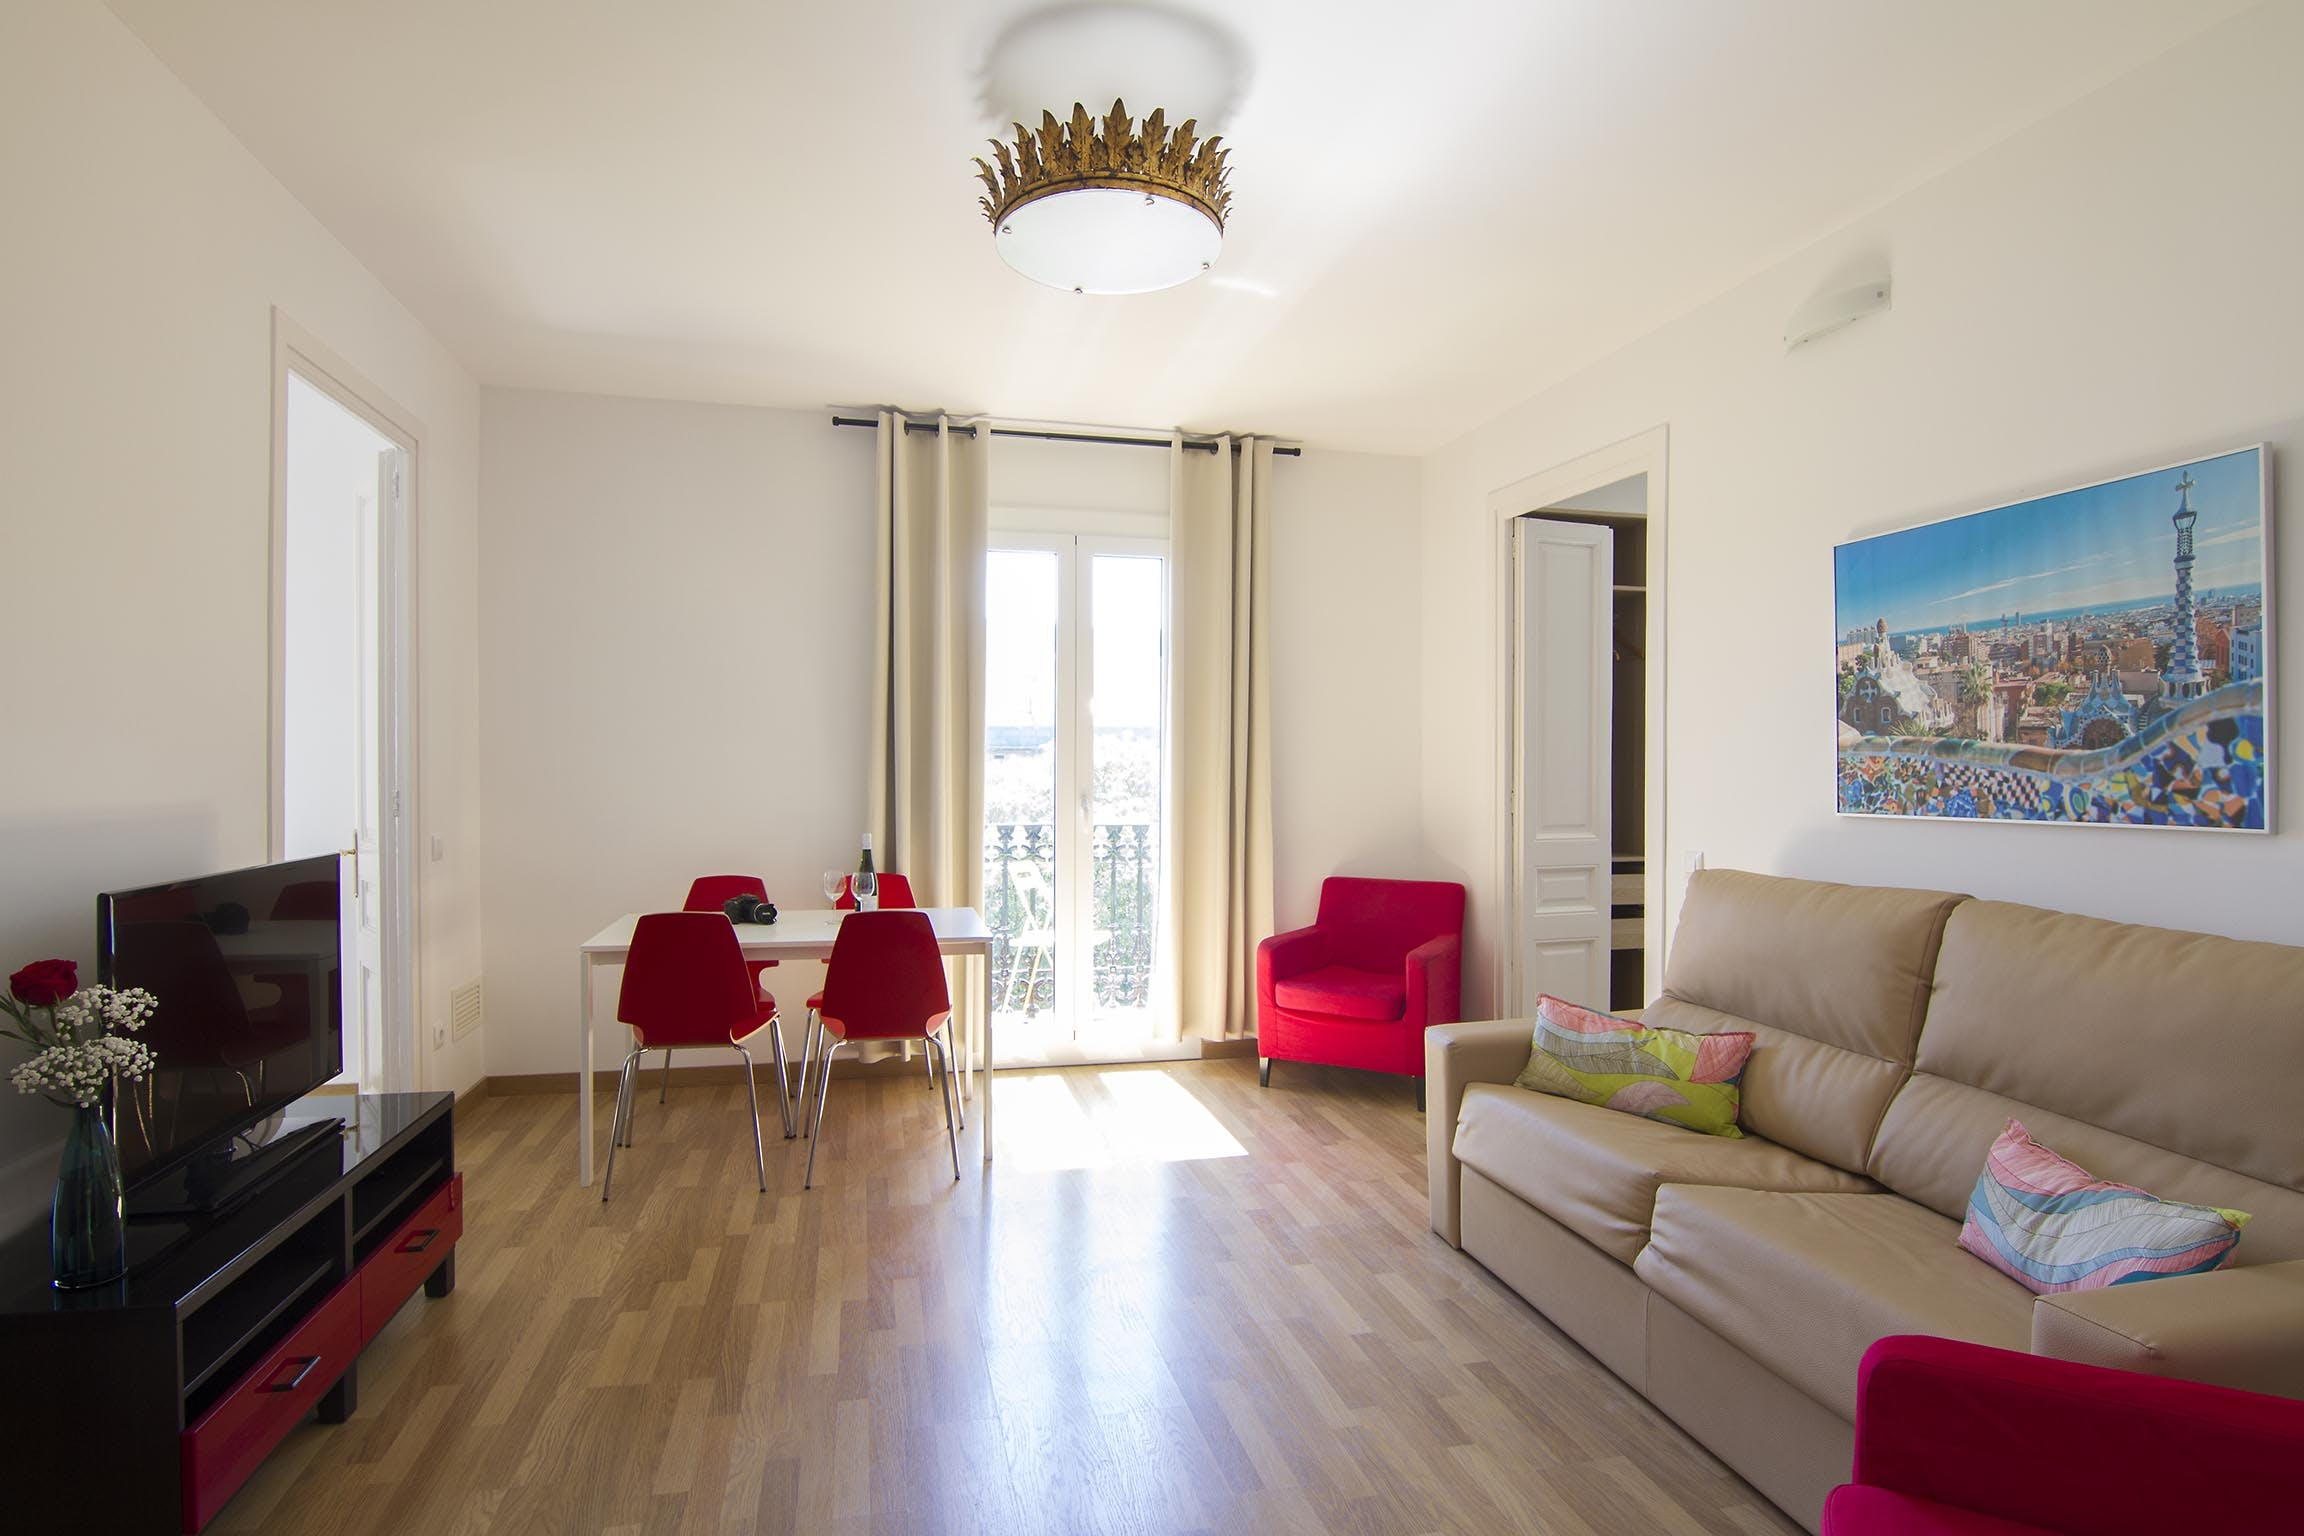 Four Bedroom apartment with balconies 4 12 guests